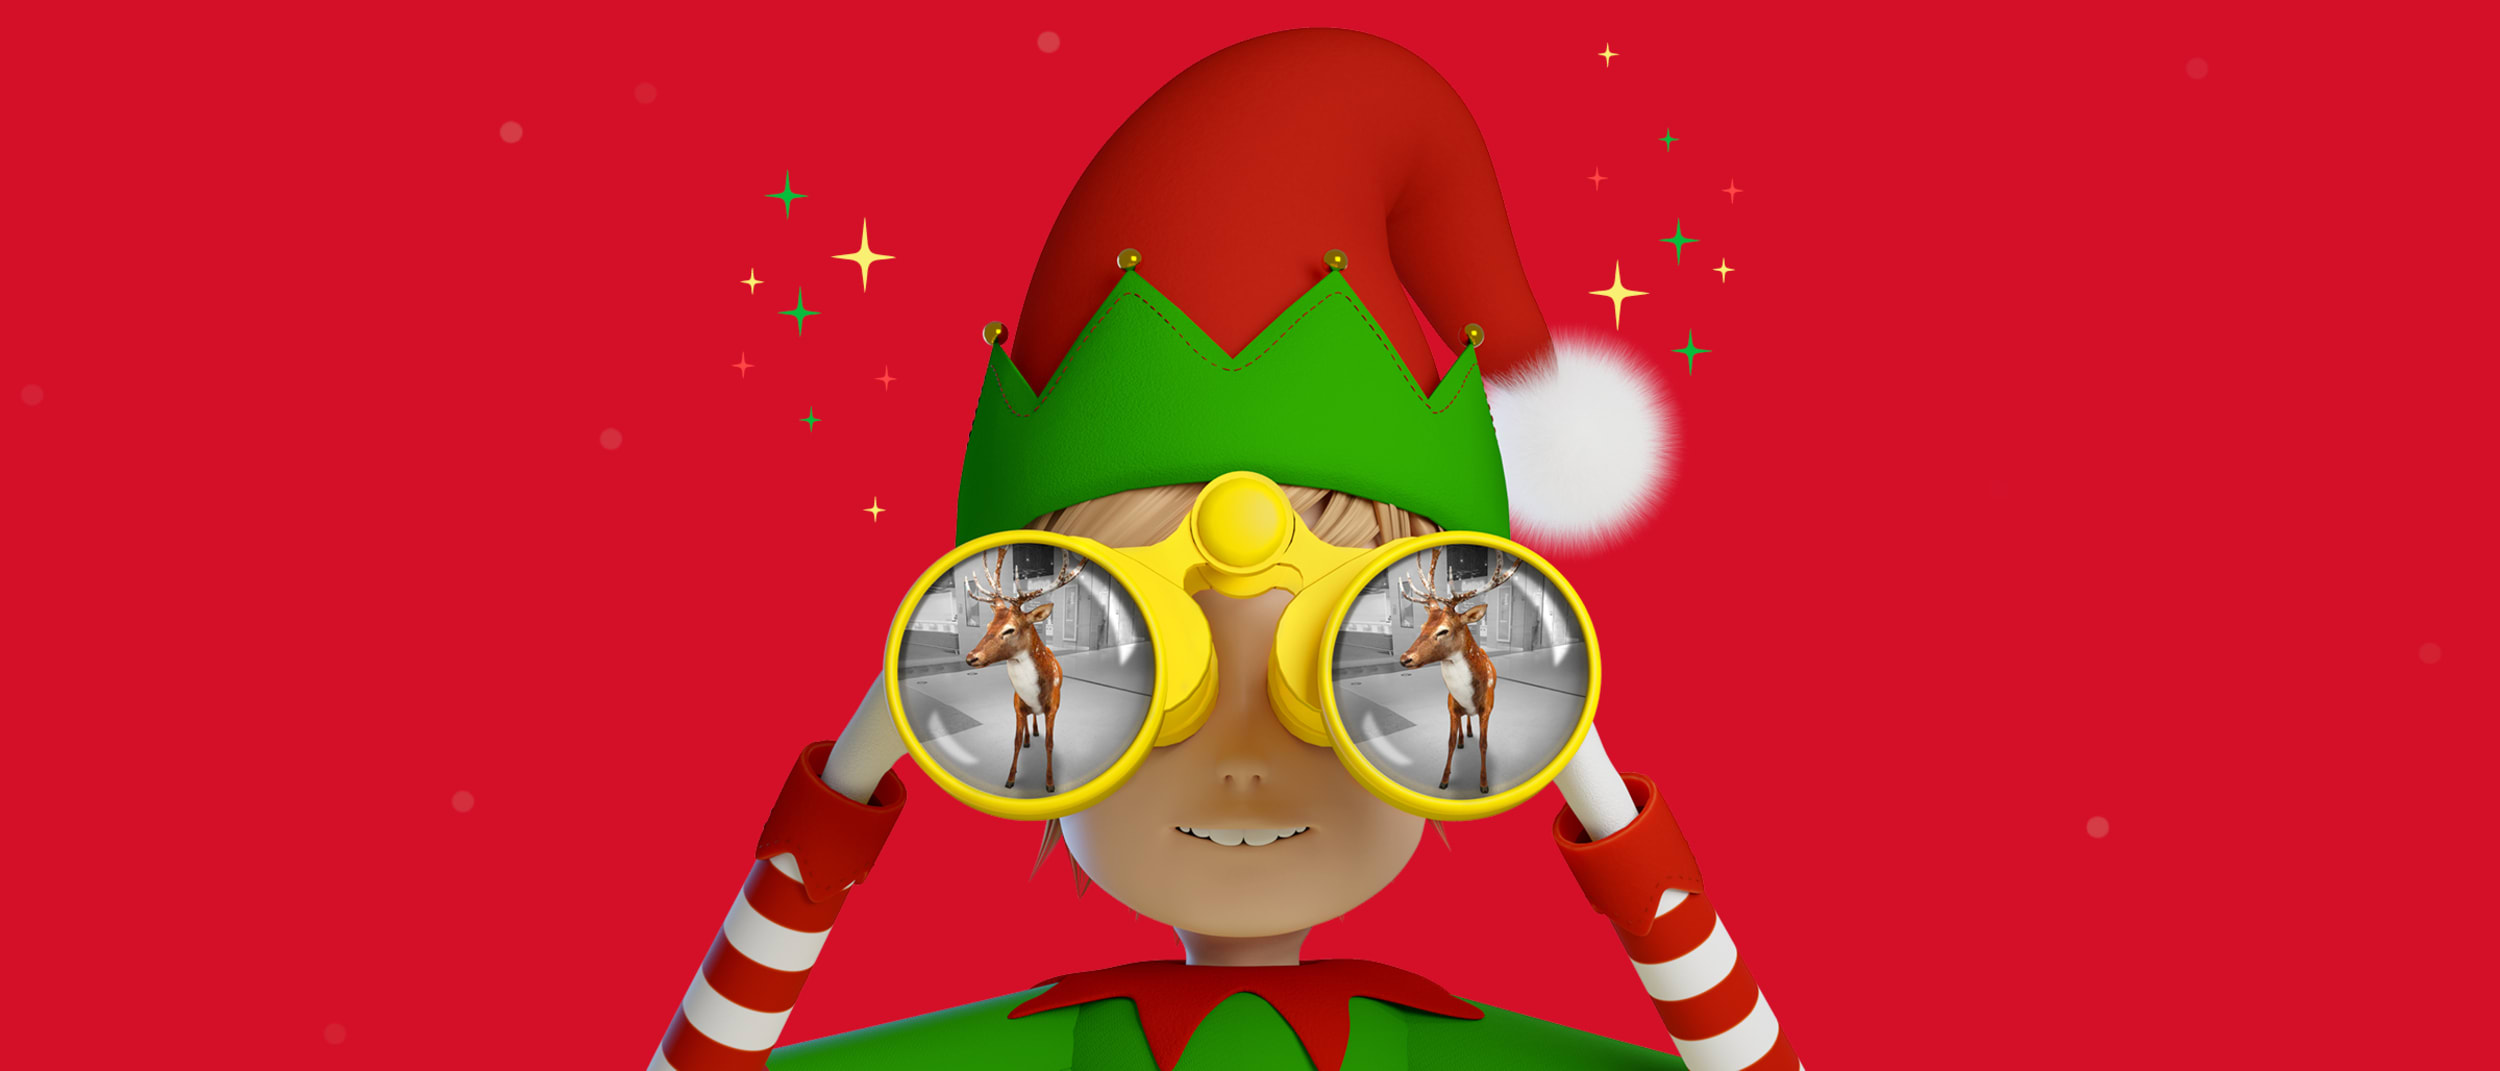 Join our Reindeer Rescue augmented reality adventure